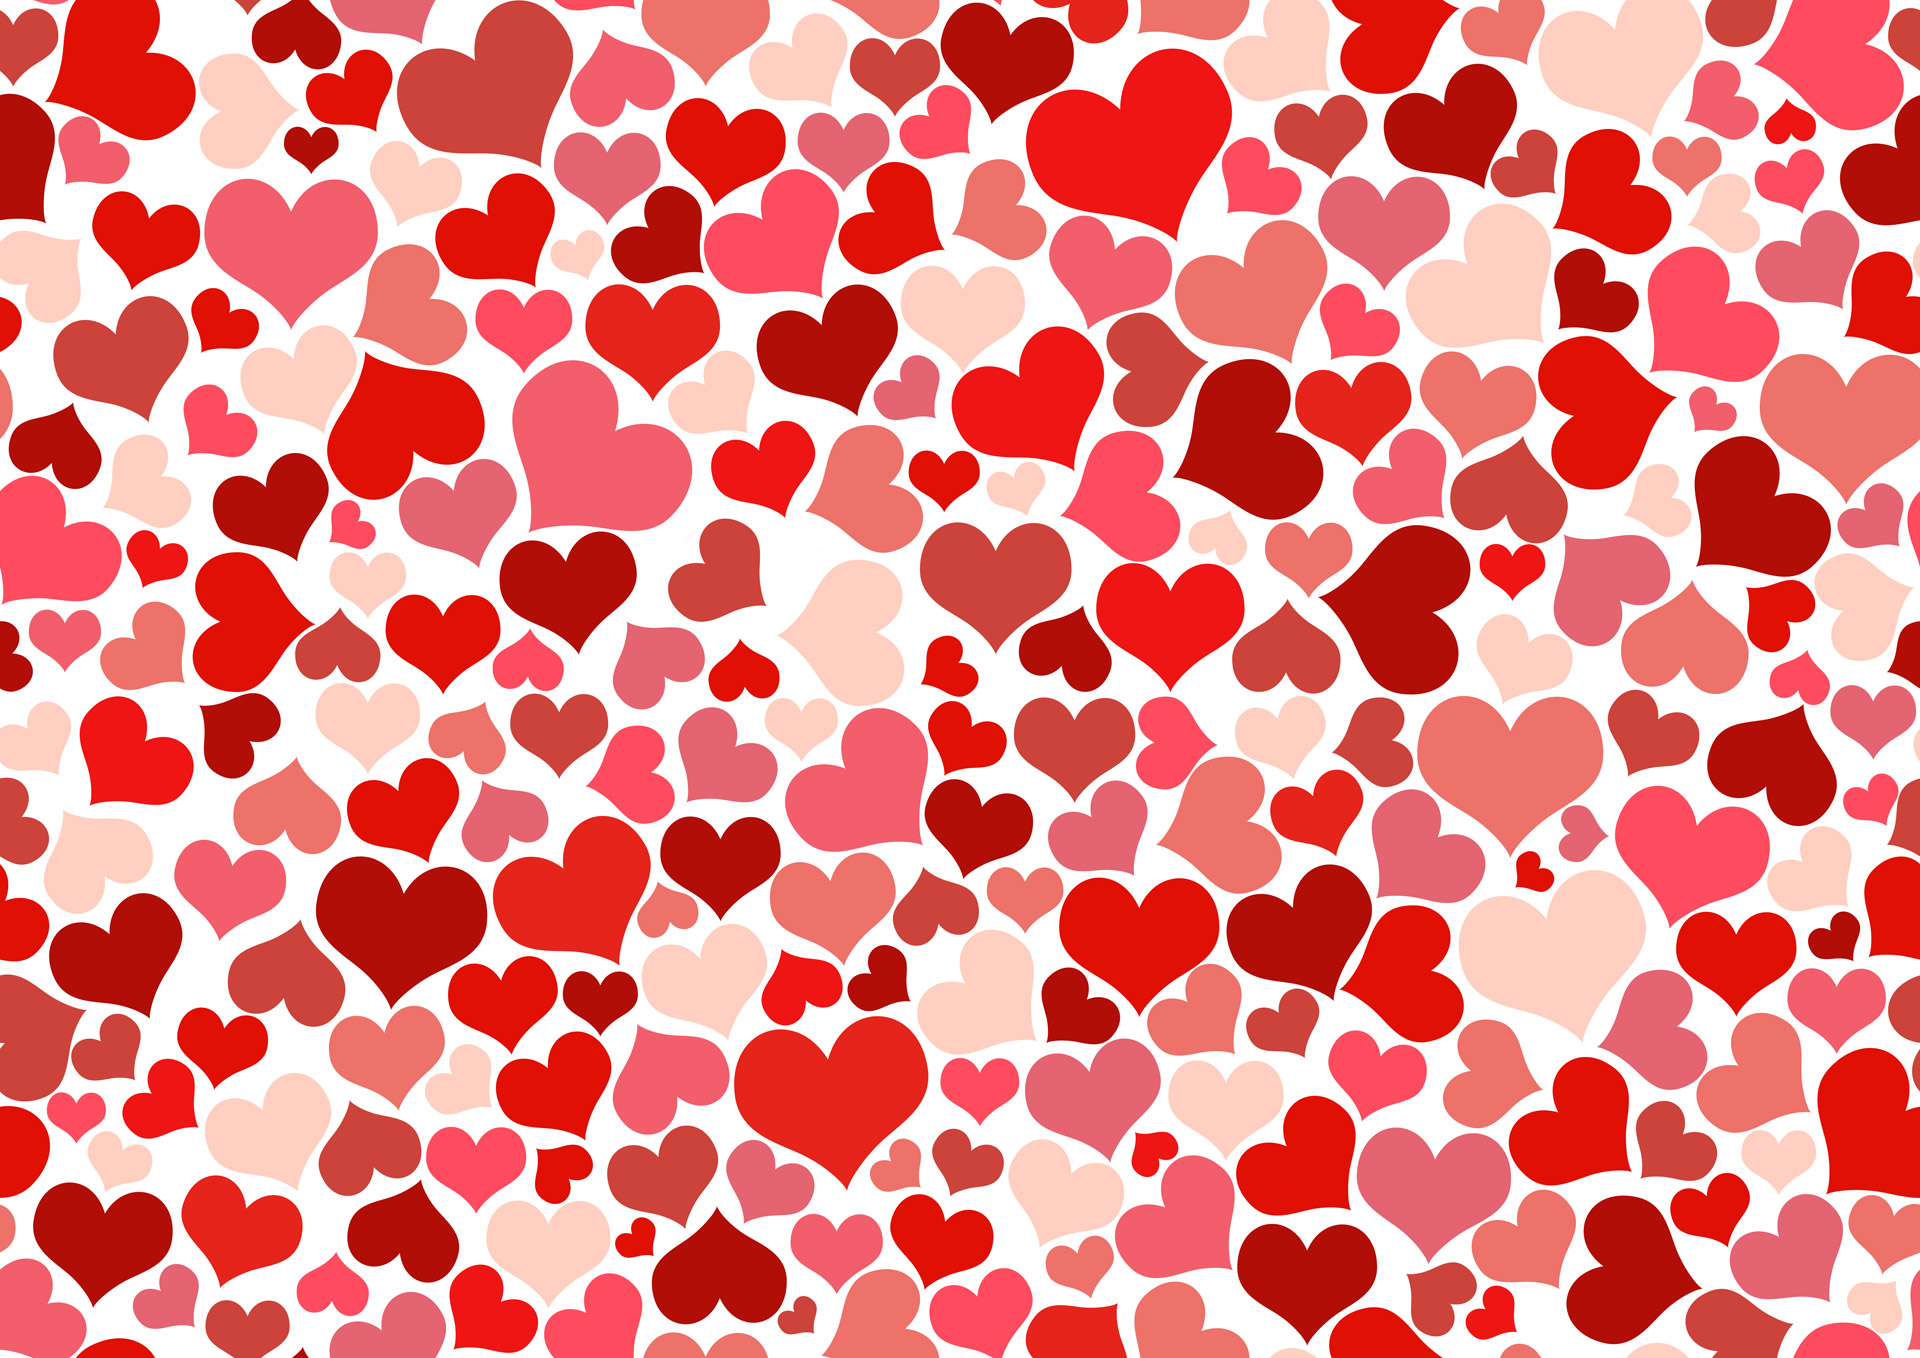 Hearts Wallpaper Free Stock Photo   Public Domain Pictures Hearts Wallpaper